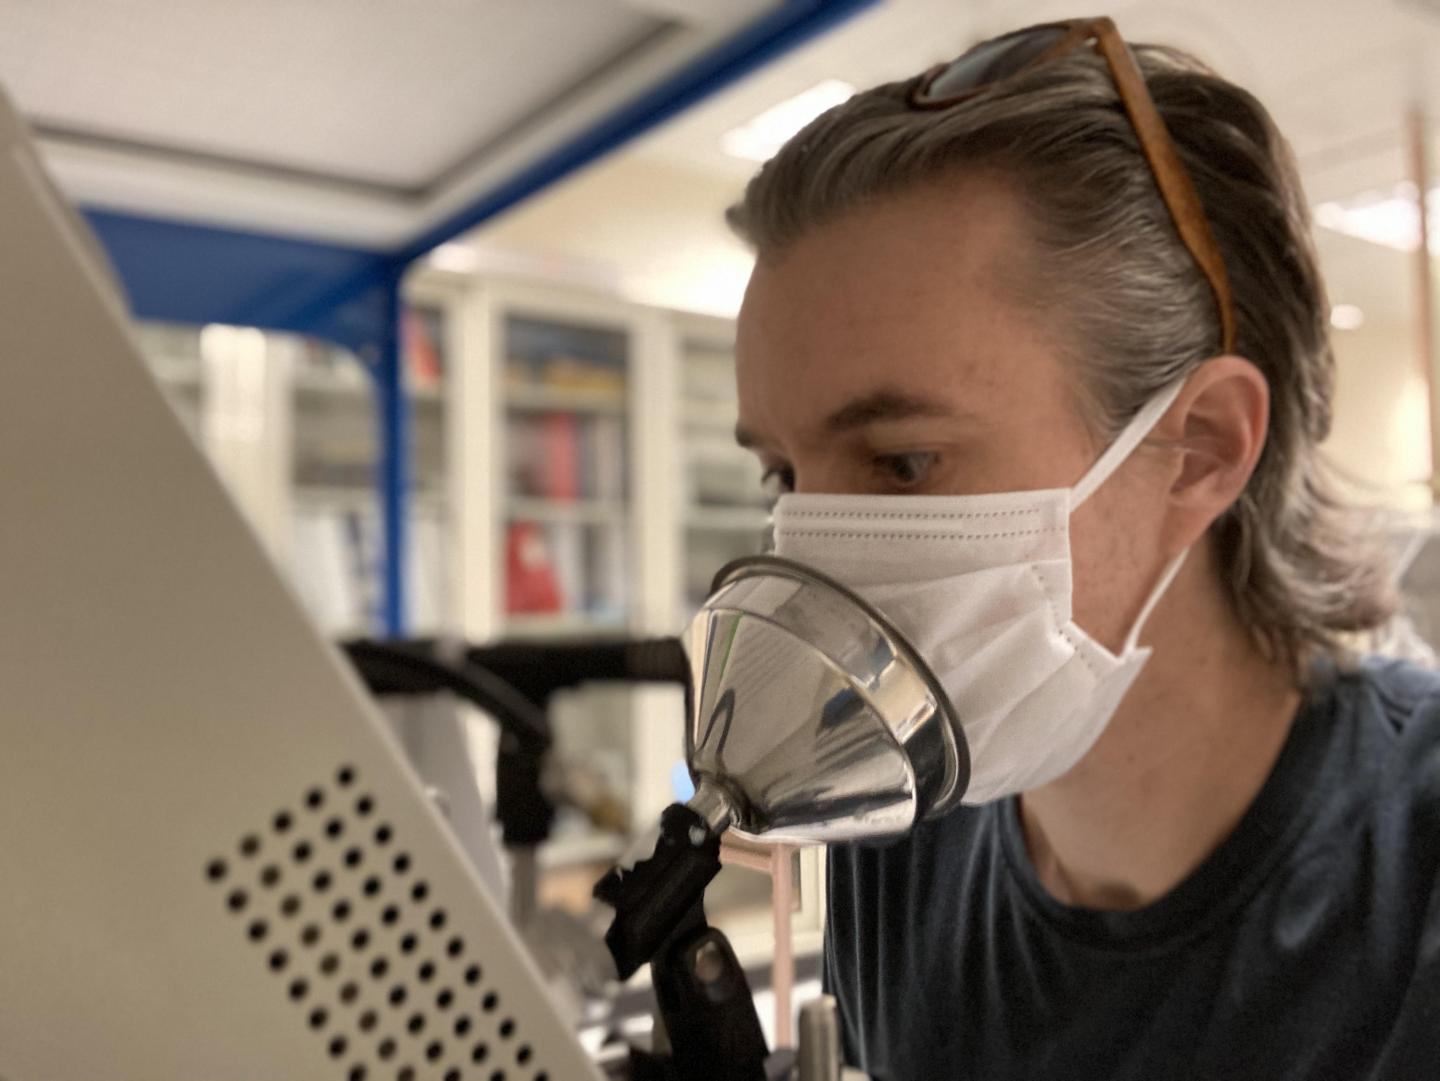 Comparing Face Coverings in Controlling Expired Particles Surgical, N95 Masks Block Most Particles